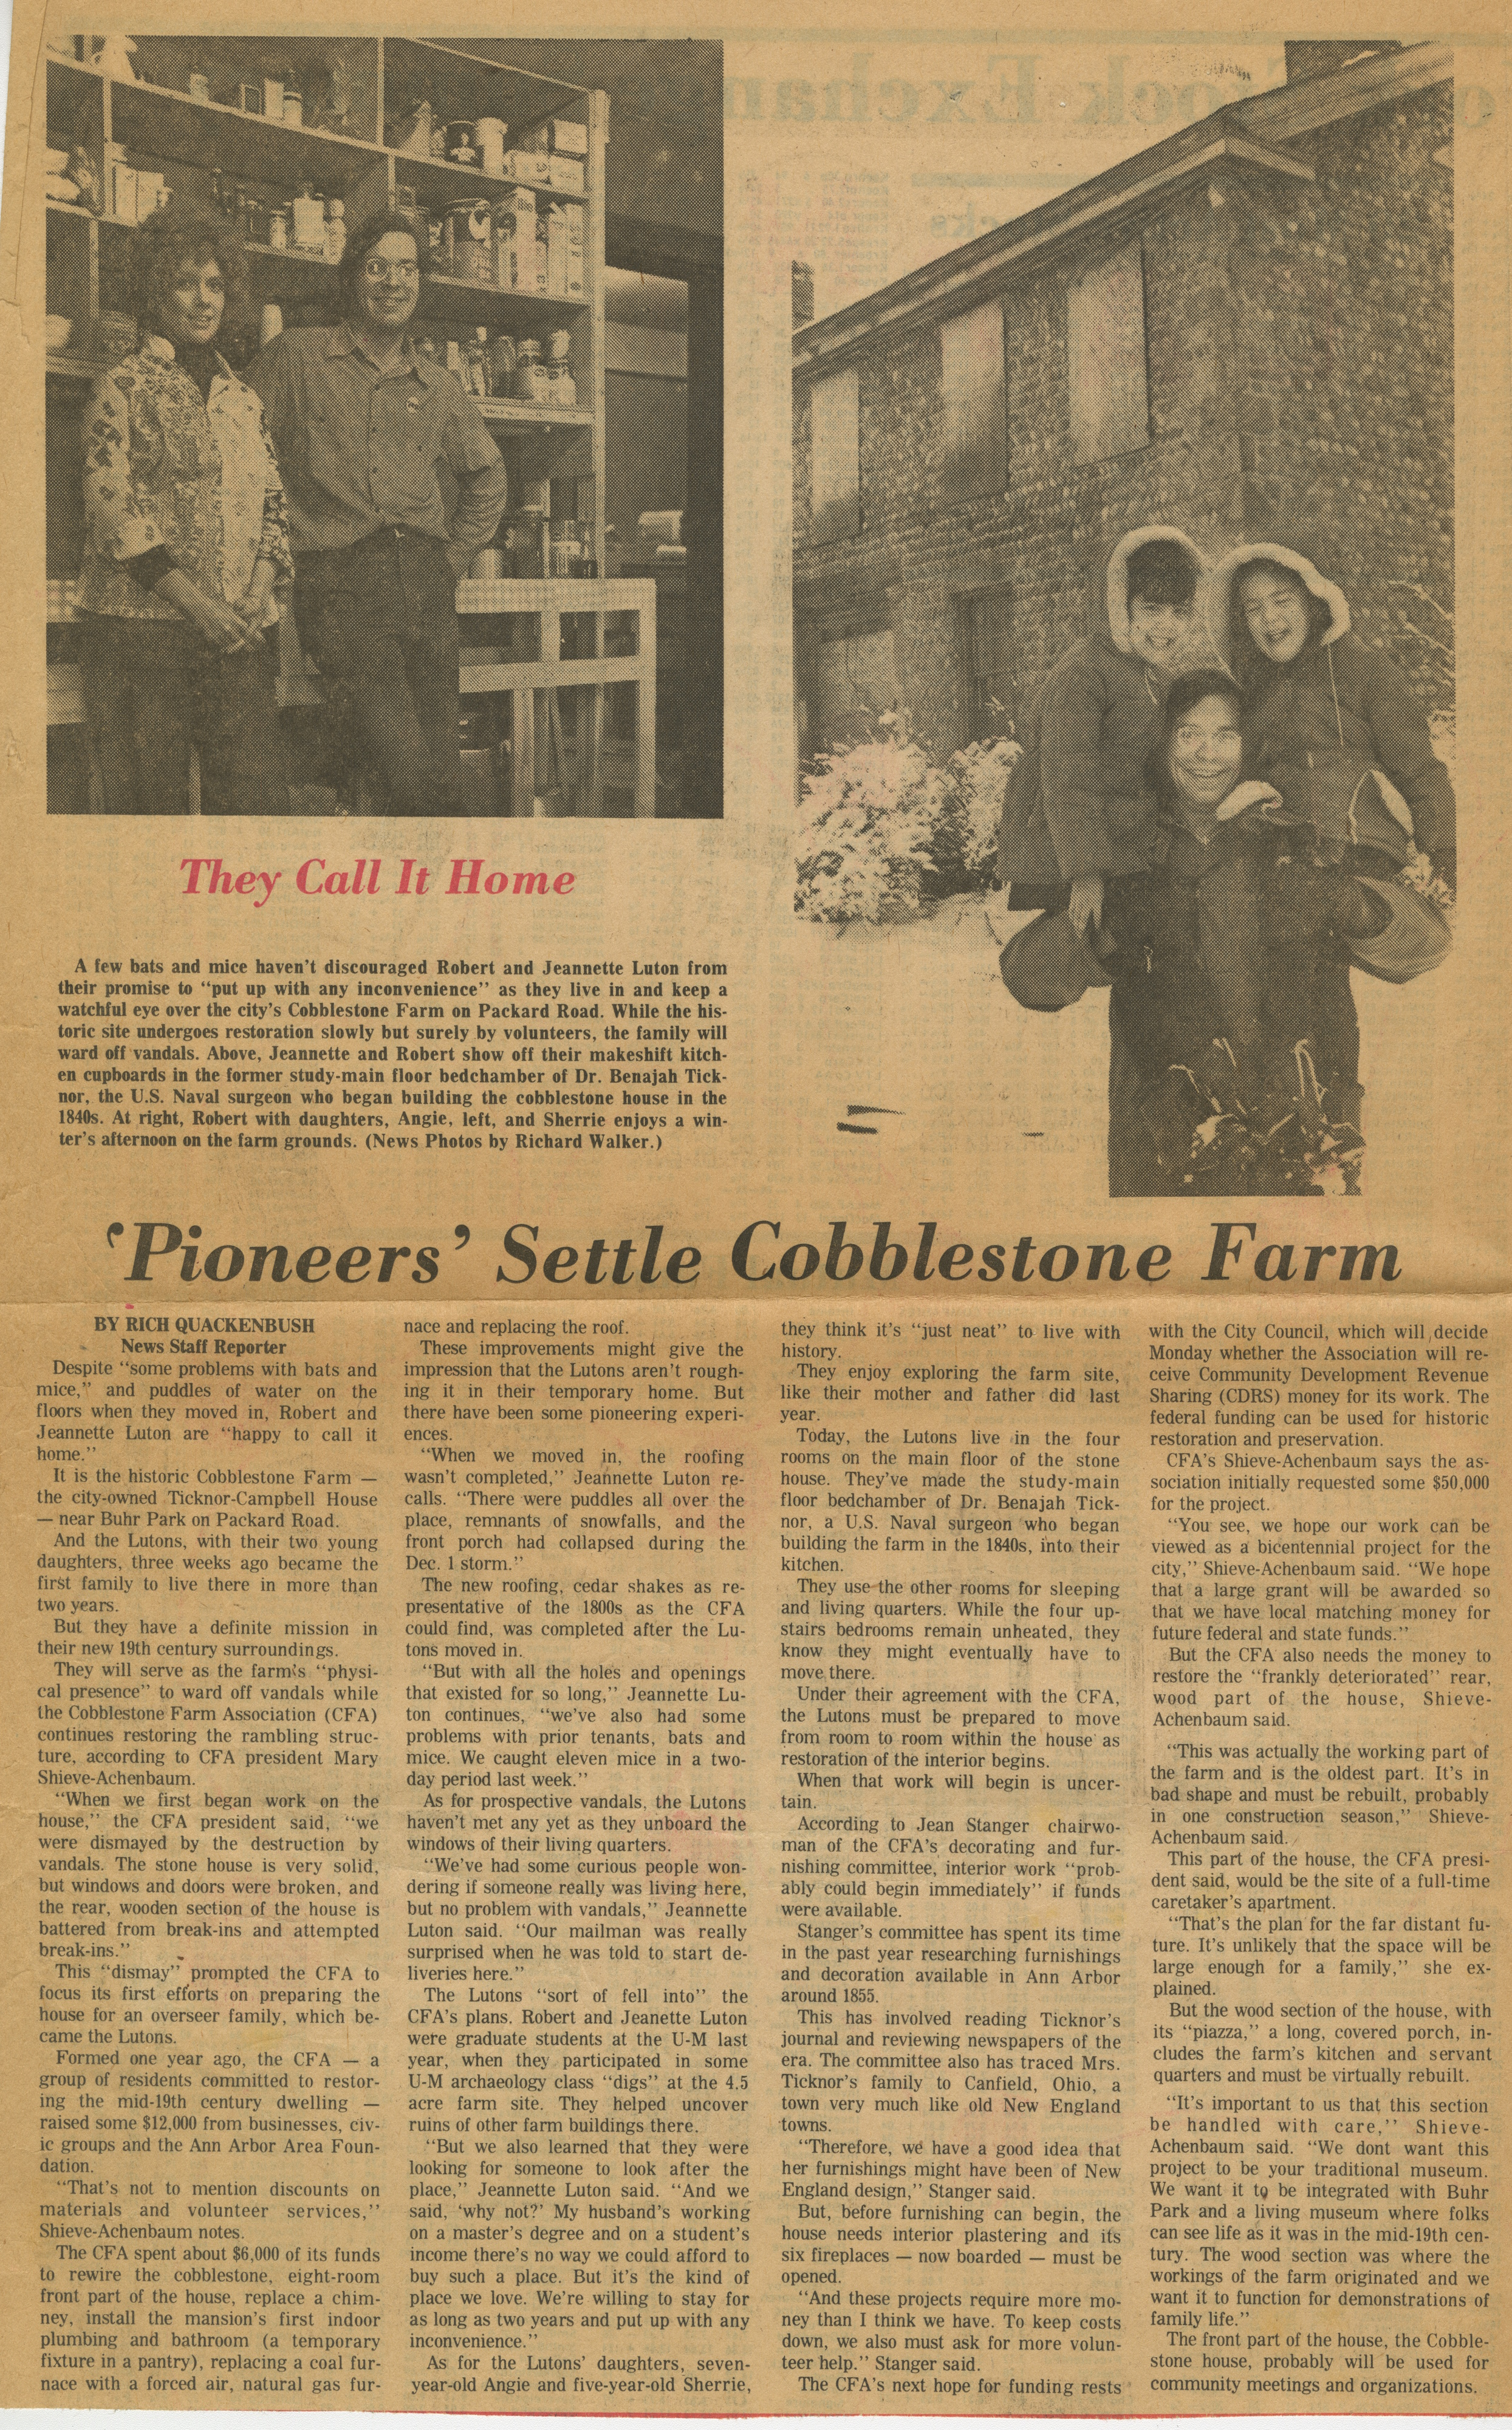 'Pioneers' Settle Cobblestone Farm image